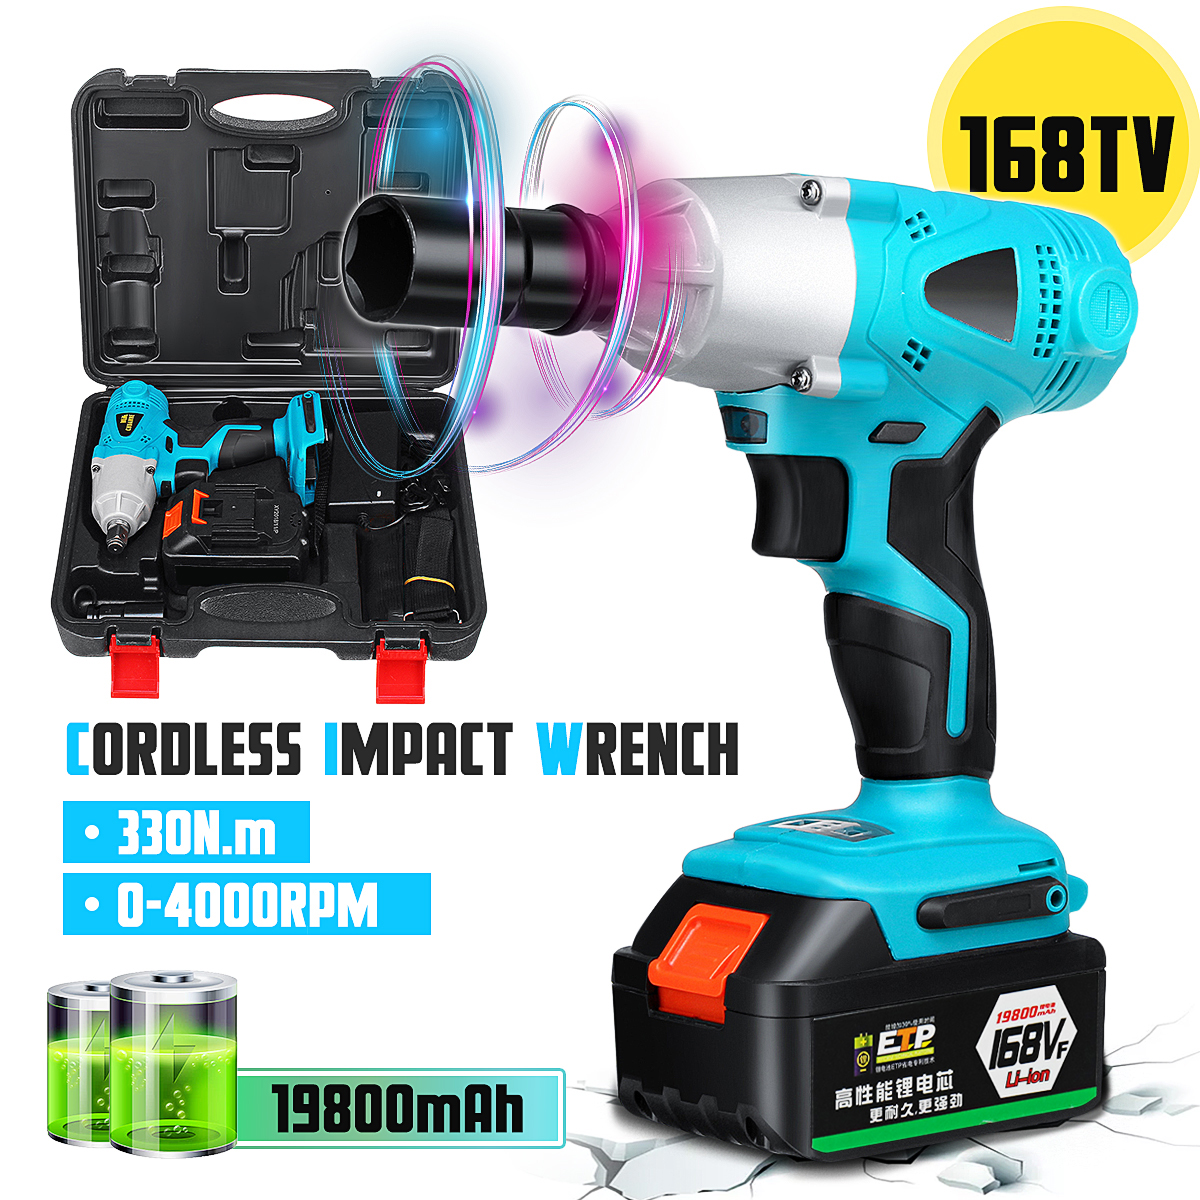 Electric Impact Wrench 1/2 Driver Socket Wrench 330NM Torque Li-ion 2 Battery Hand Drill Install Power Tool